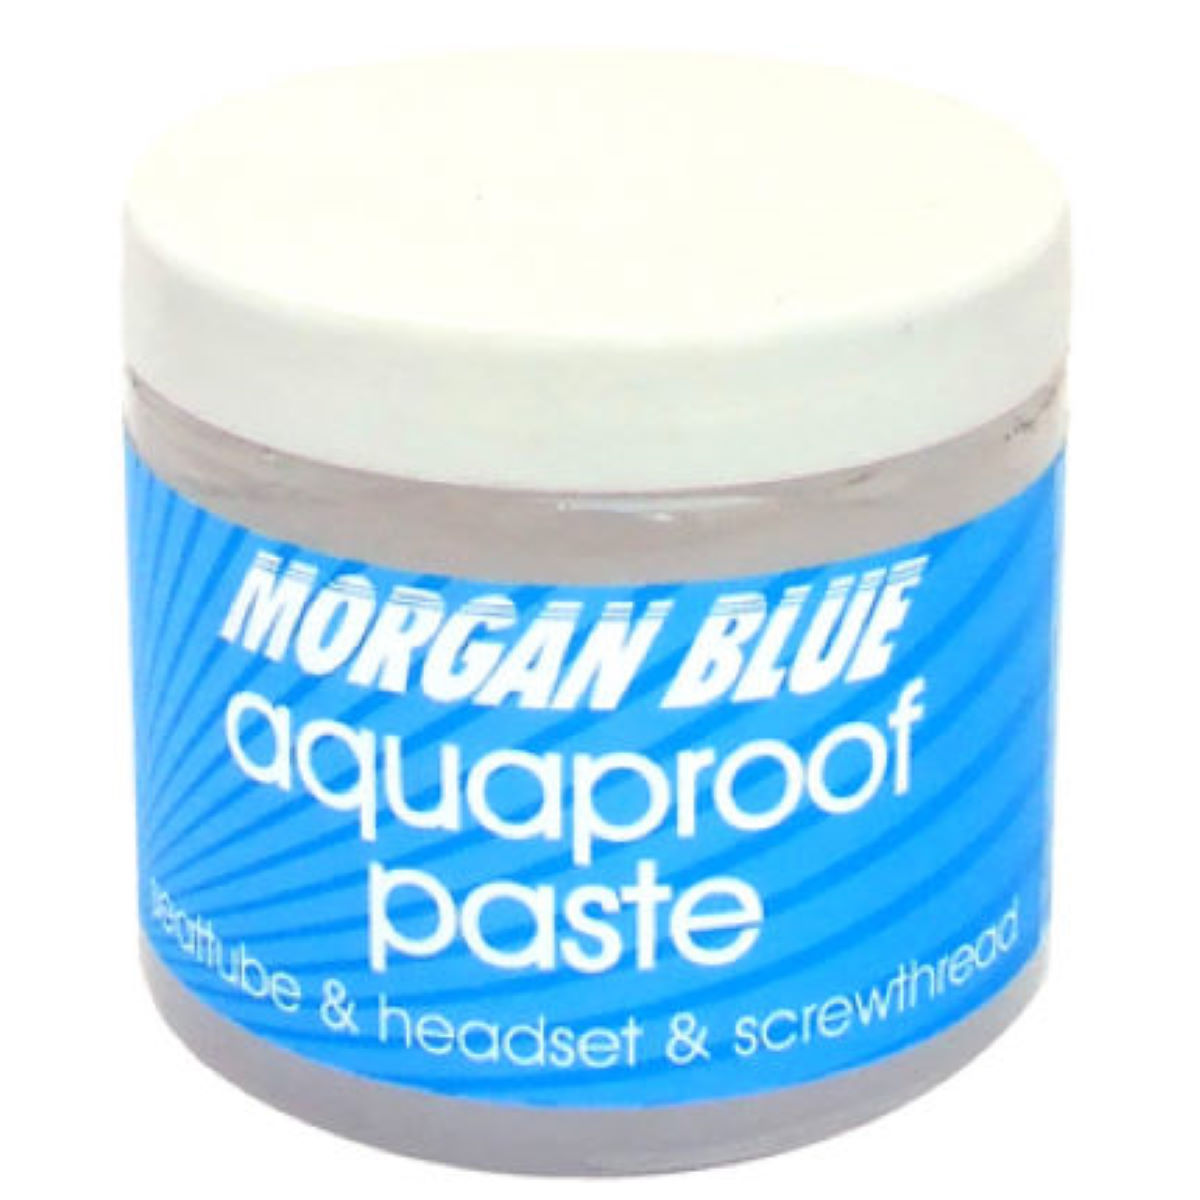 Grasa impermeable Morgan Blue Aquaproof Paste (200 ml) - Grasas